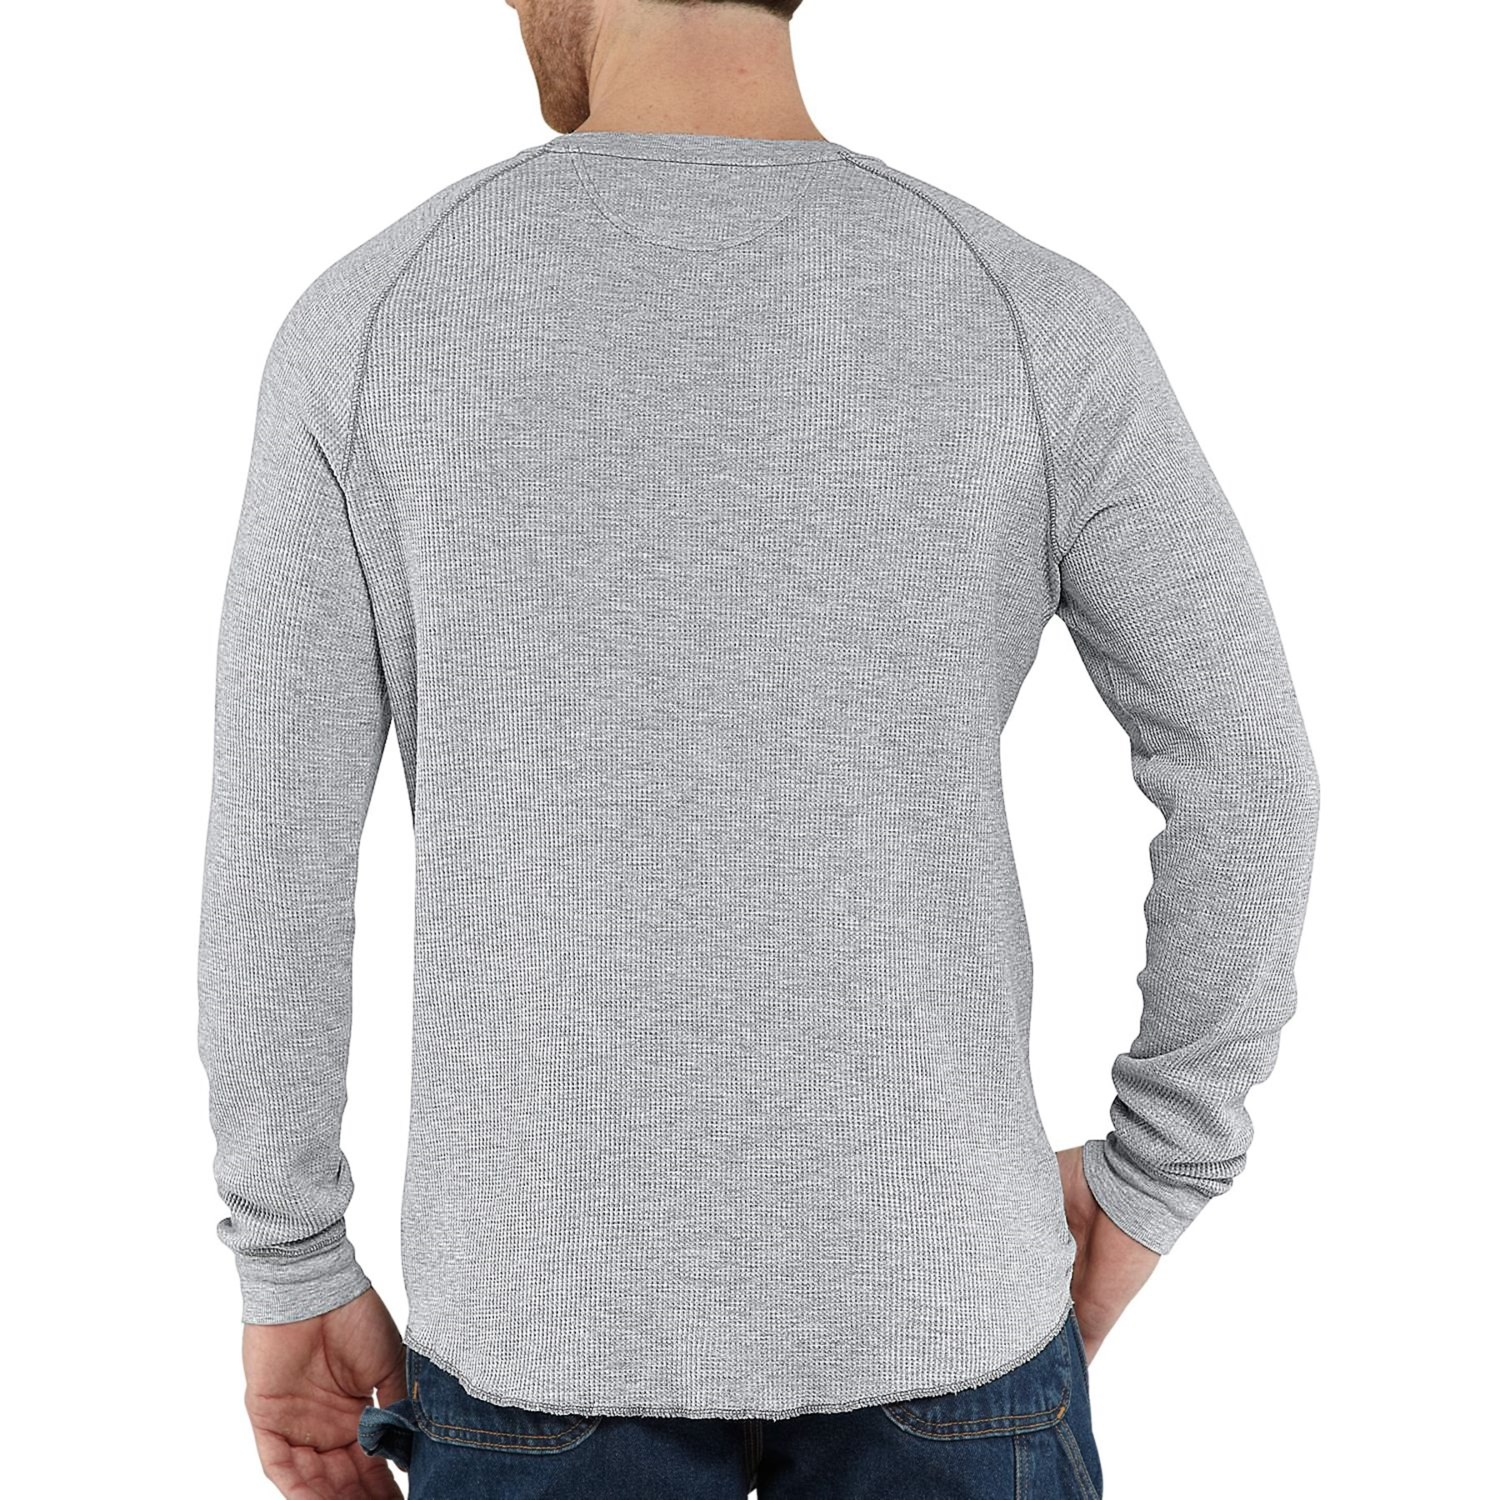 FREE SHIPPING AVAILABLE! Shop cybergamesl.ga and save on Henley Shirts Shirts.